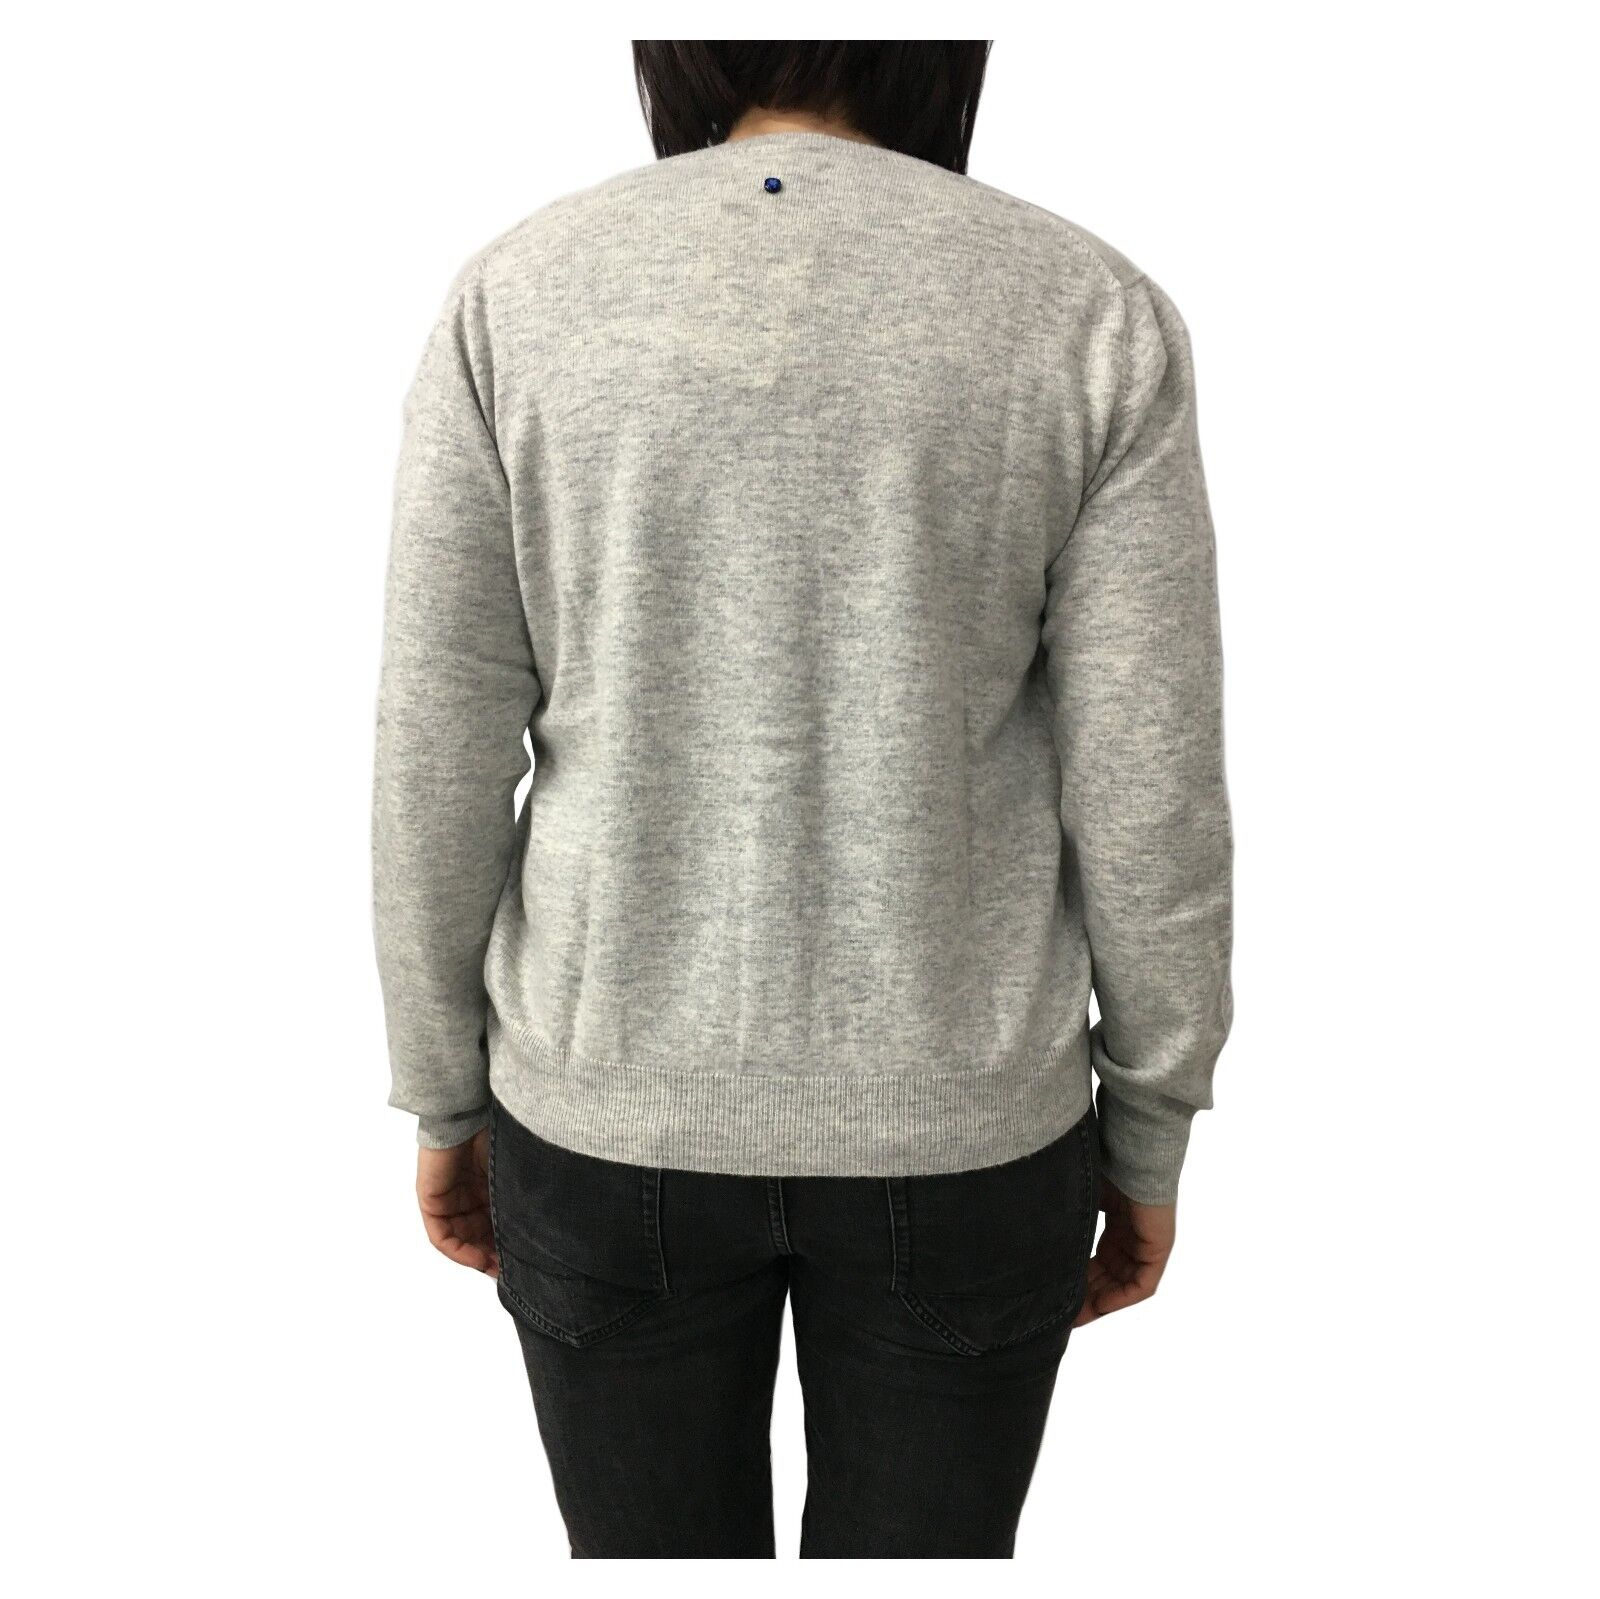 CA' VAGAN twin-set woman pearl 90% wool 10% cashmere cashmere cashmere MADE IN MONGOLIA a562a1